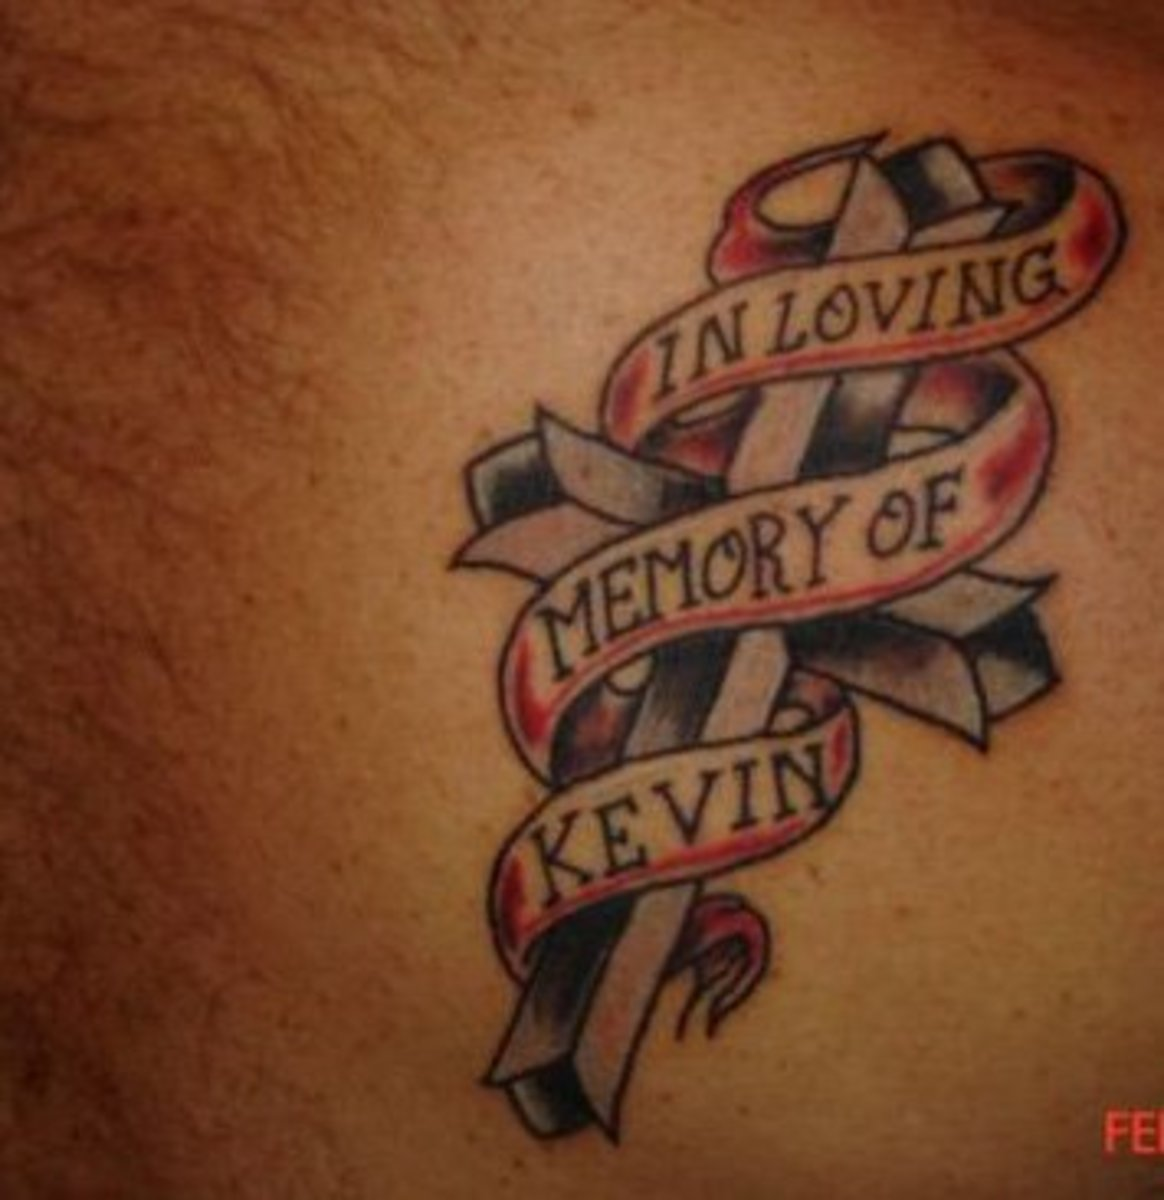 5687b3950 In Loving Memory: Memorial R.I.P. Tattoos | TatRing